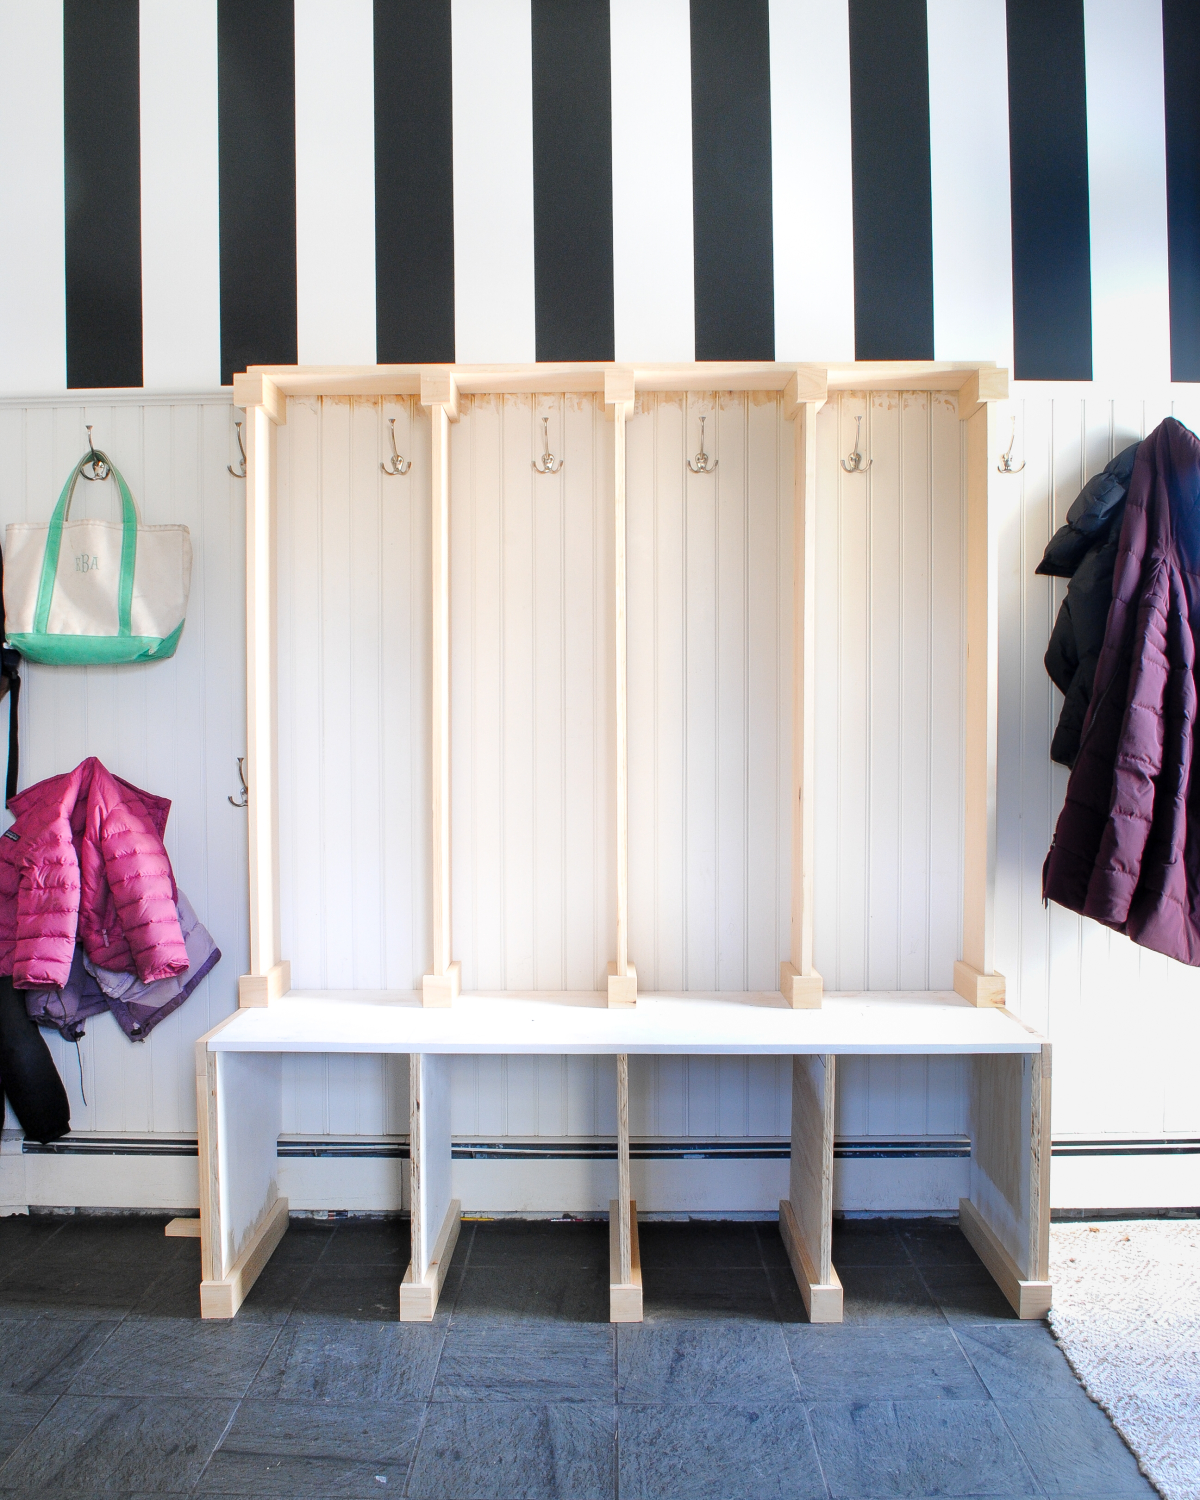 Mudroom Lockers Cool Mudroom Design View Full Size With